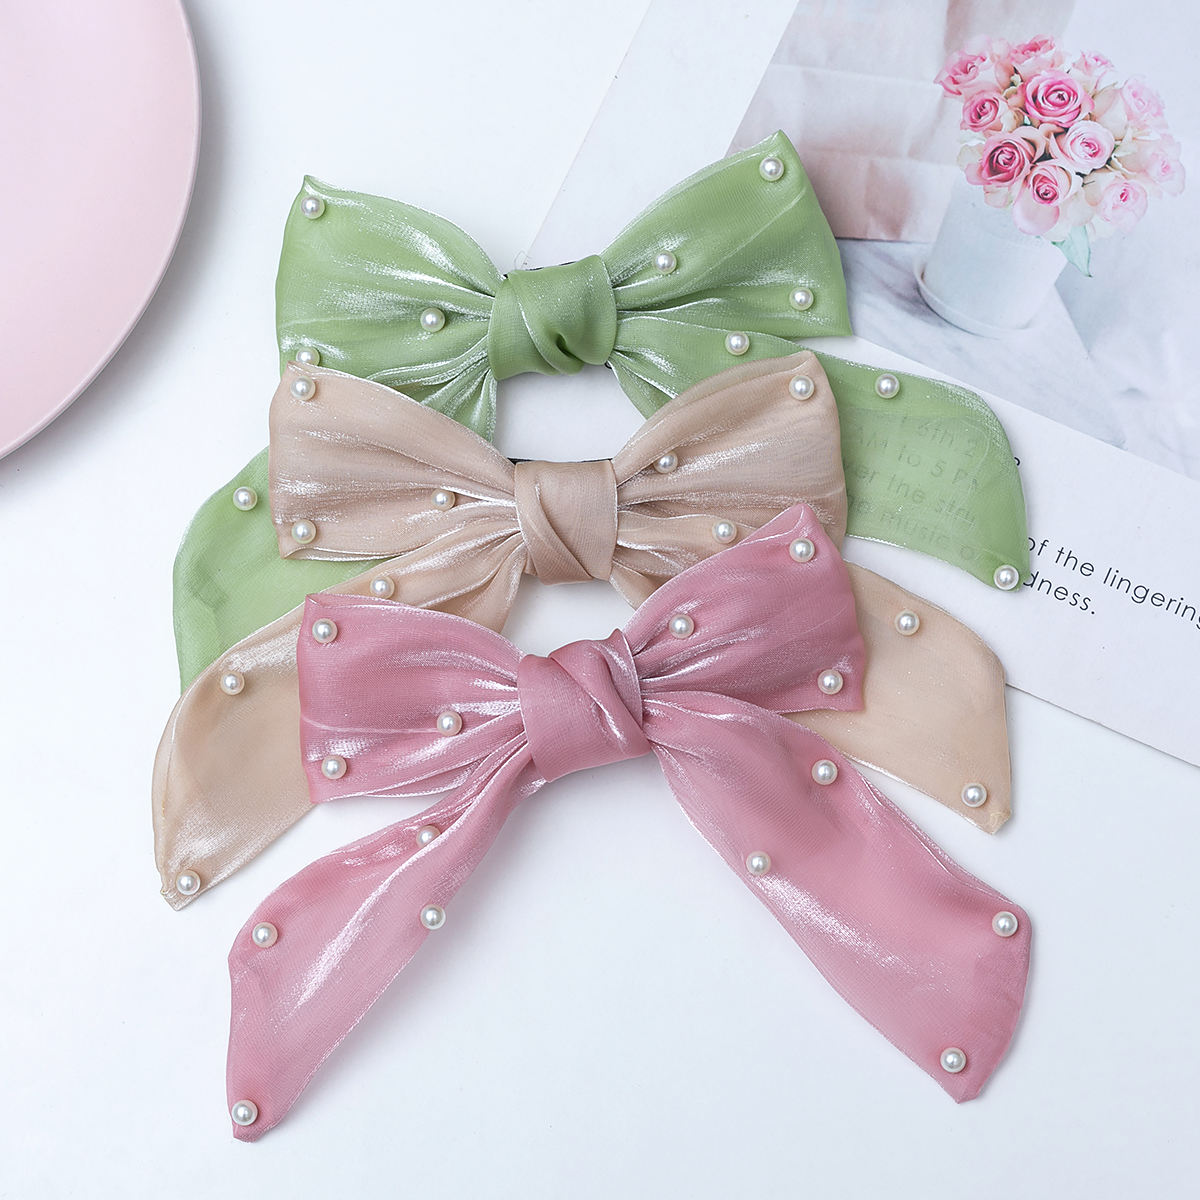 S-KING Boutique Big <span class=keywords><strong>Organza</strong></span> Perle Langes Band Schmetterling Bogen Haars pangen Phantasie Nette Haarnadel Für Frauen Mädchen Haarschmuck Geschenk